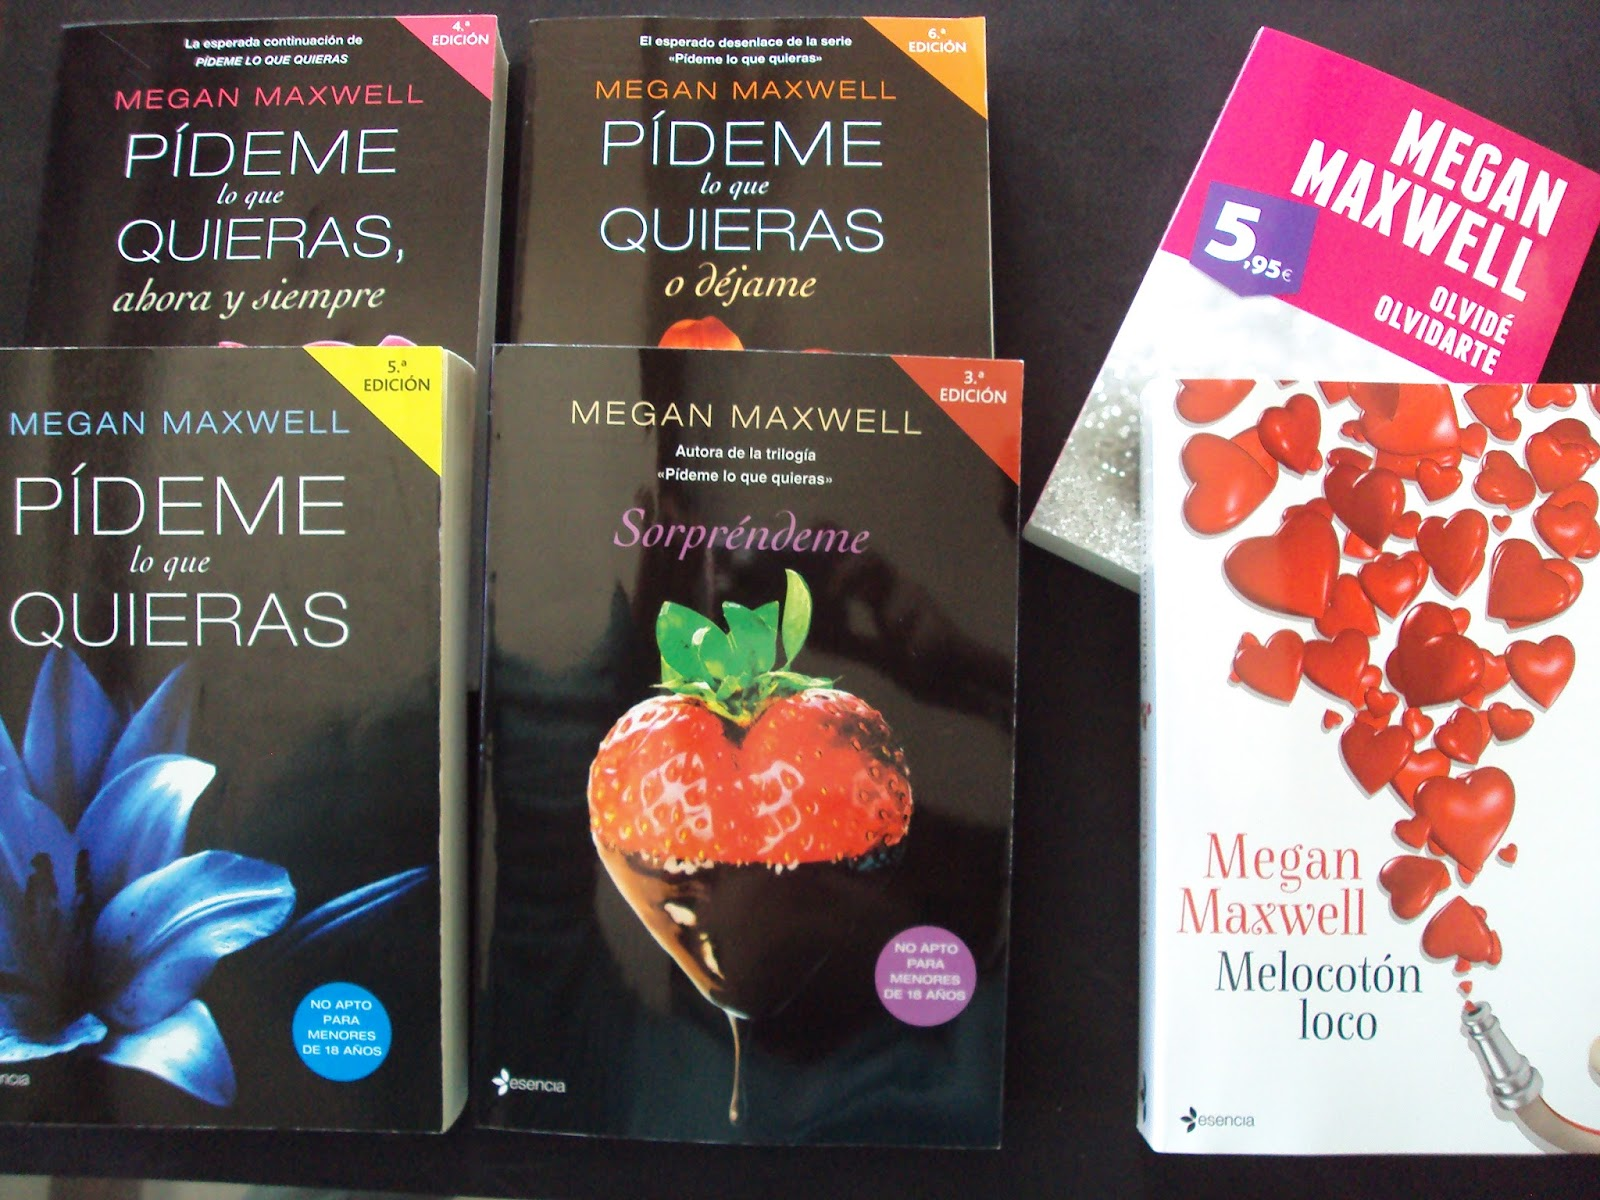 Libros Megan Maxwell Descargar Gratis Libro Melocoton Loco Epub Download